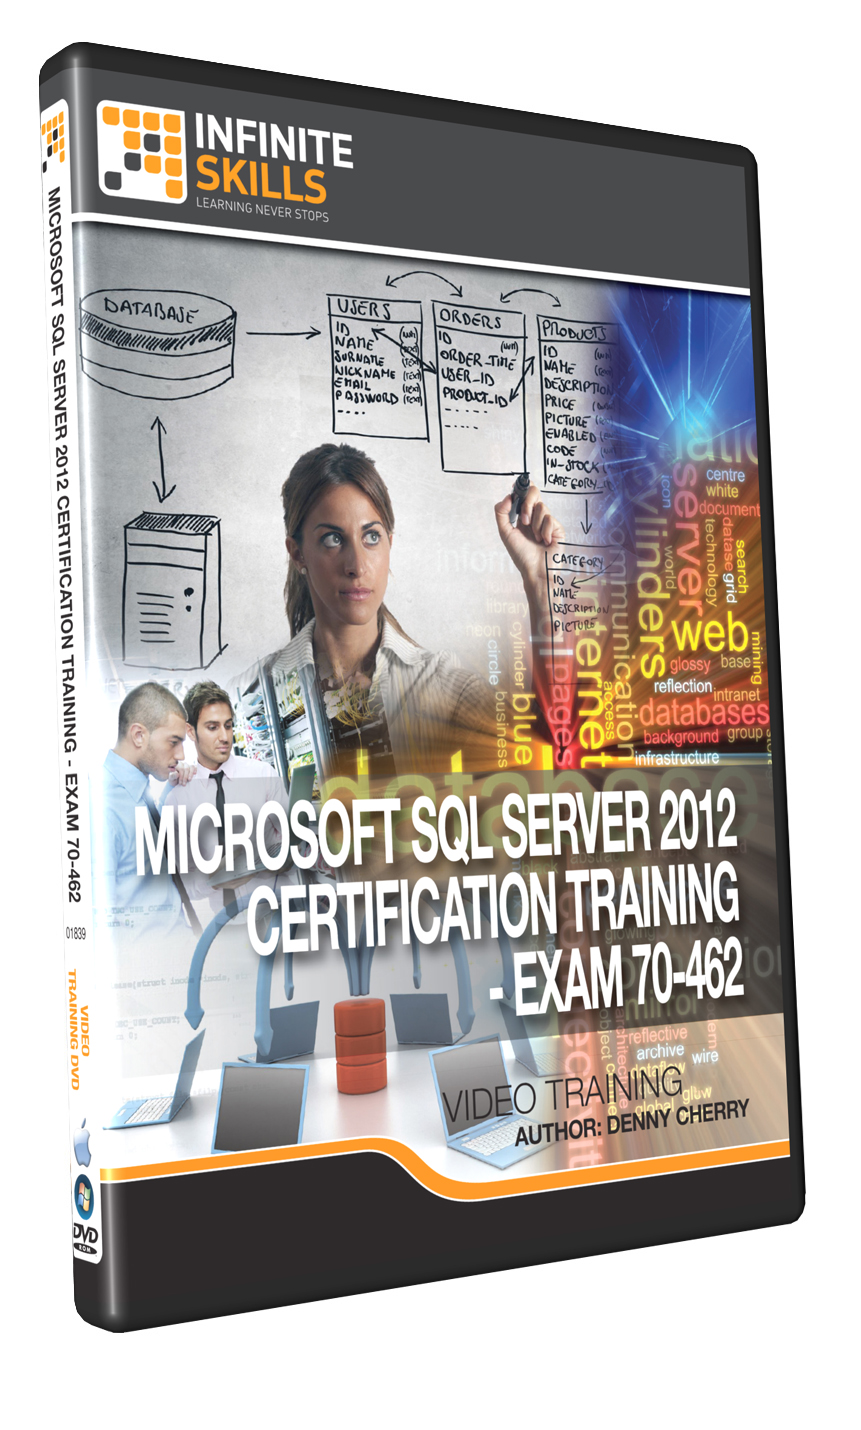 Infinite Skills Microsoft Sql Server 2012 Certification Training